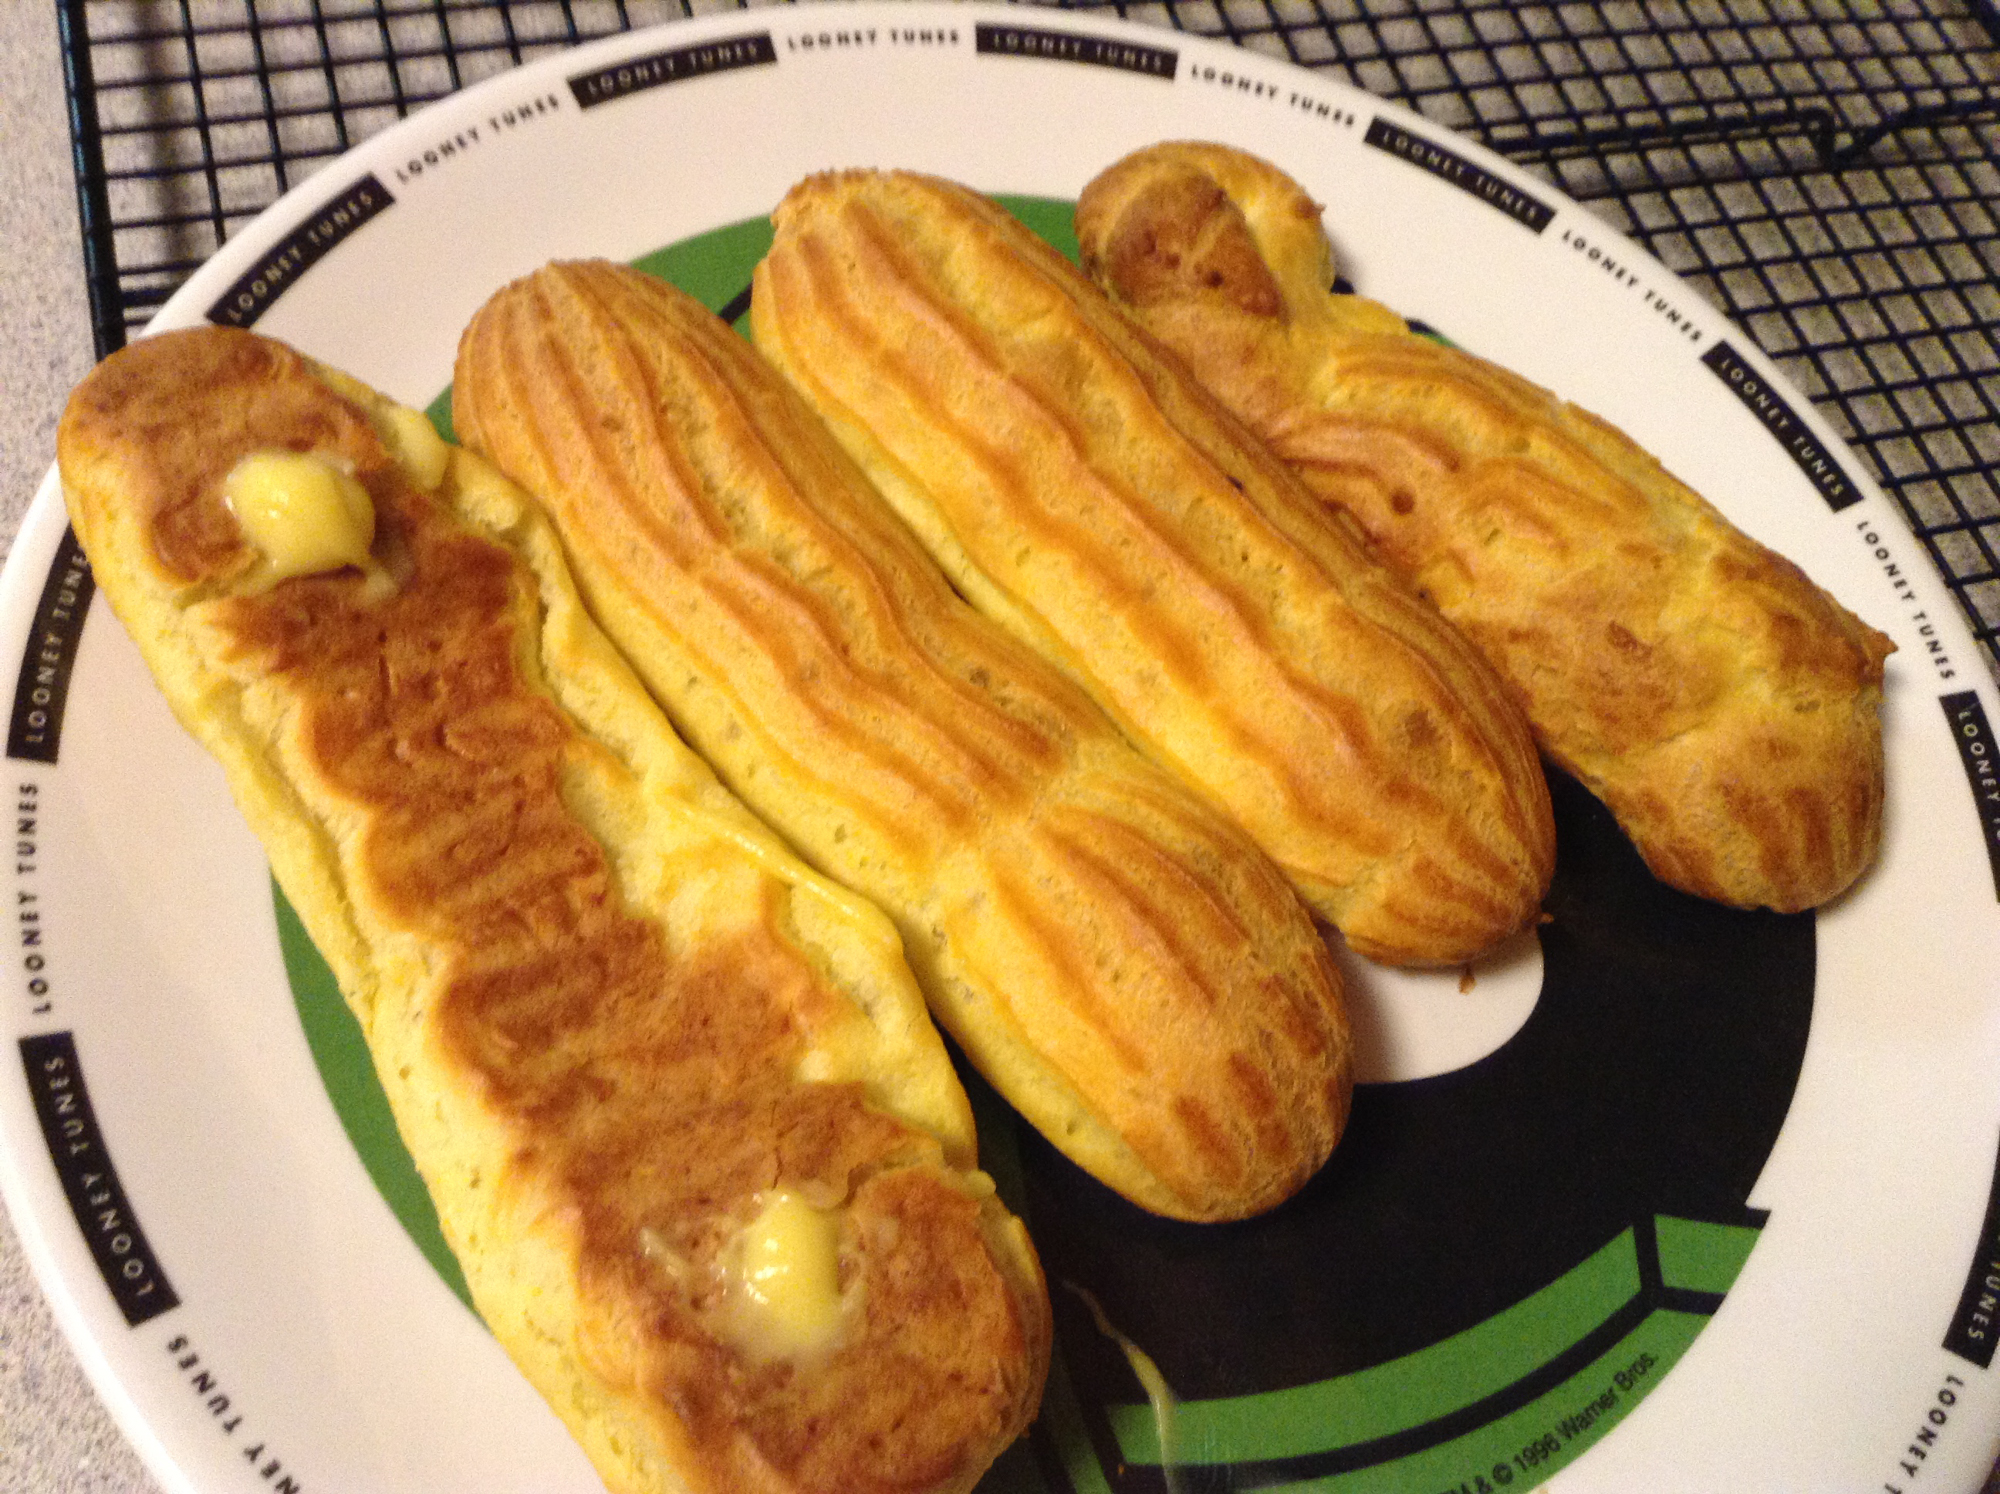 Éclairs... the edible ones